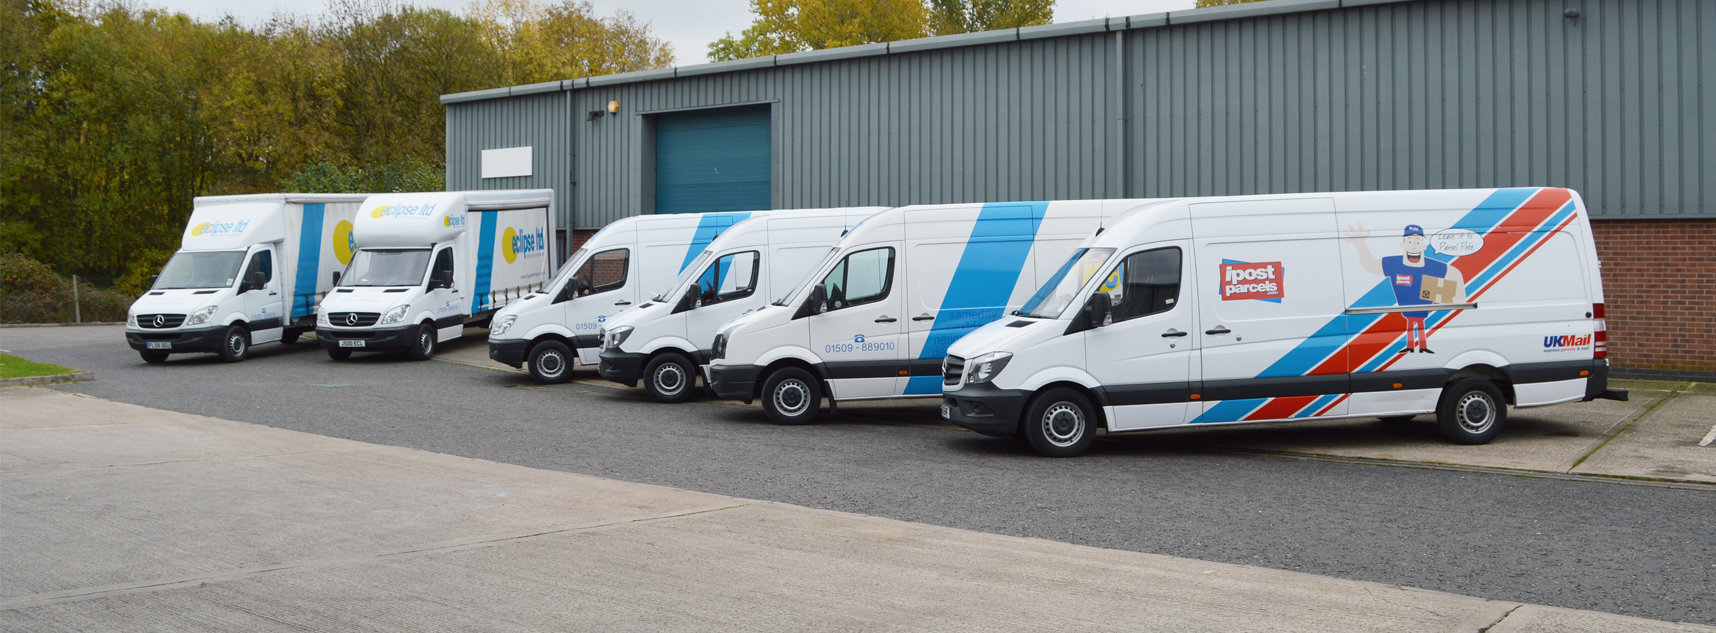 An image showing a fleet of delivery vans used to transport large and small parcels.